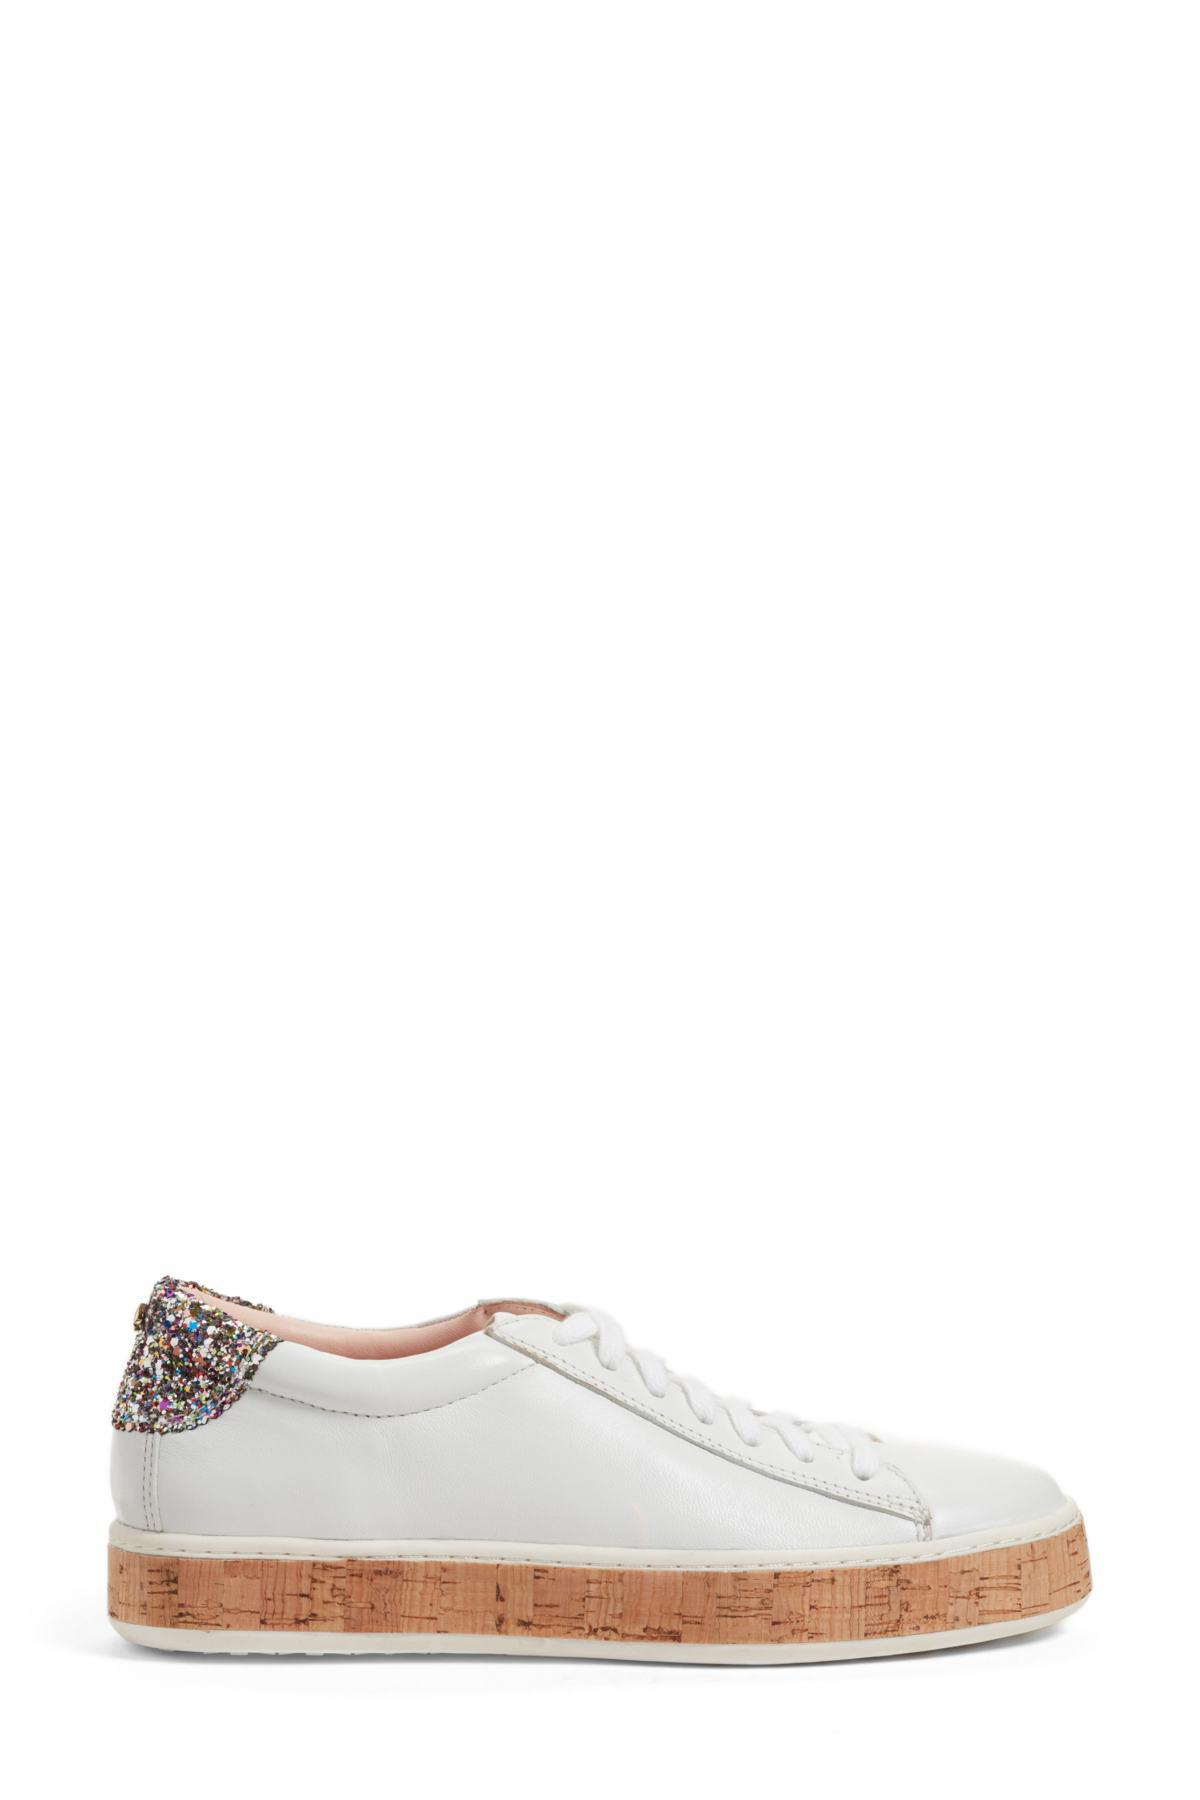 b462ab8518c2 Lyst - Kate Spade Amy Sneaker in White